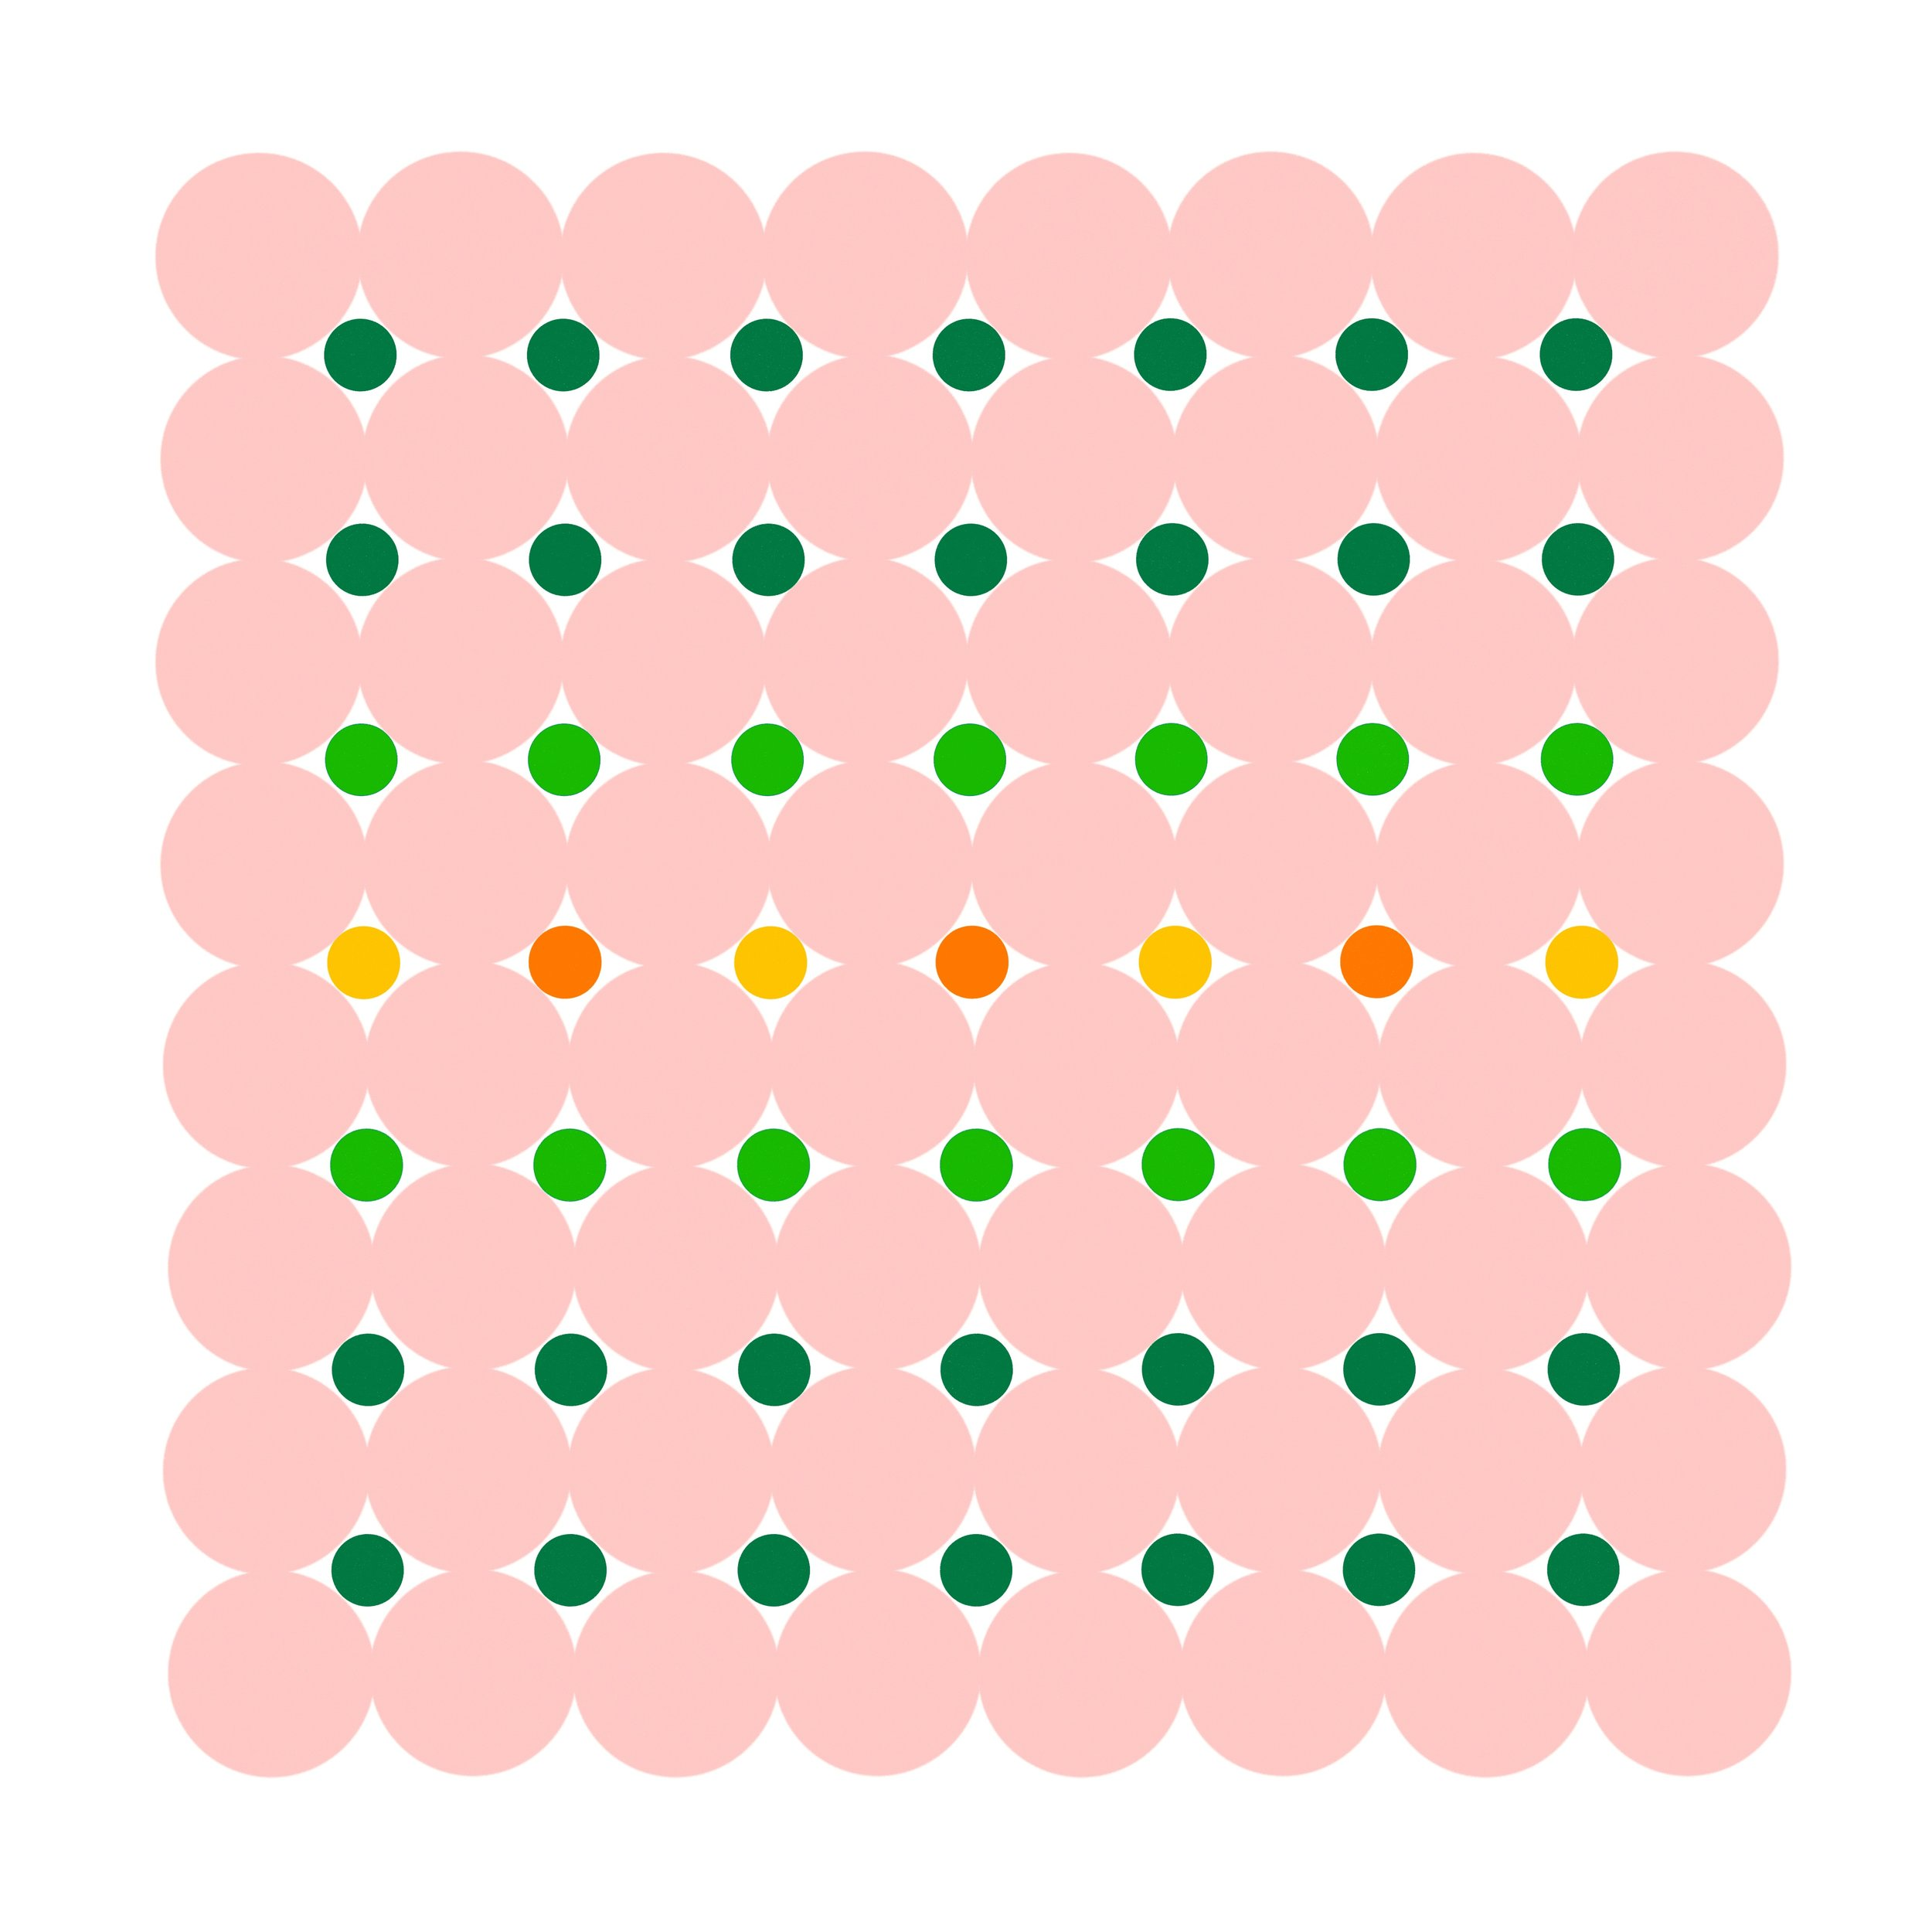 Dot Structure 3 - Soft Pink